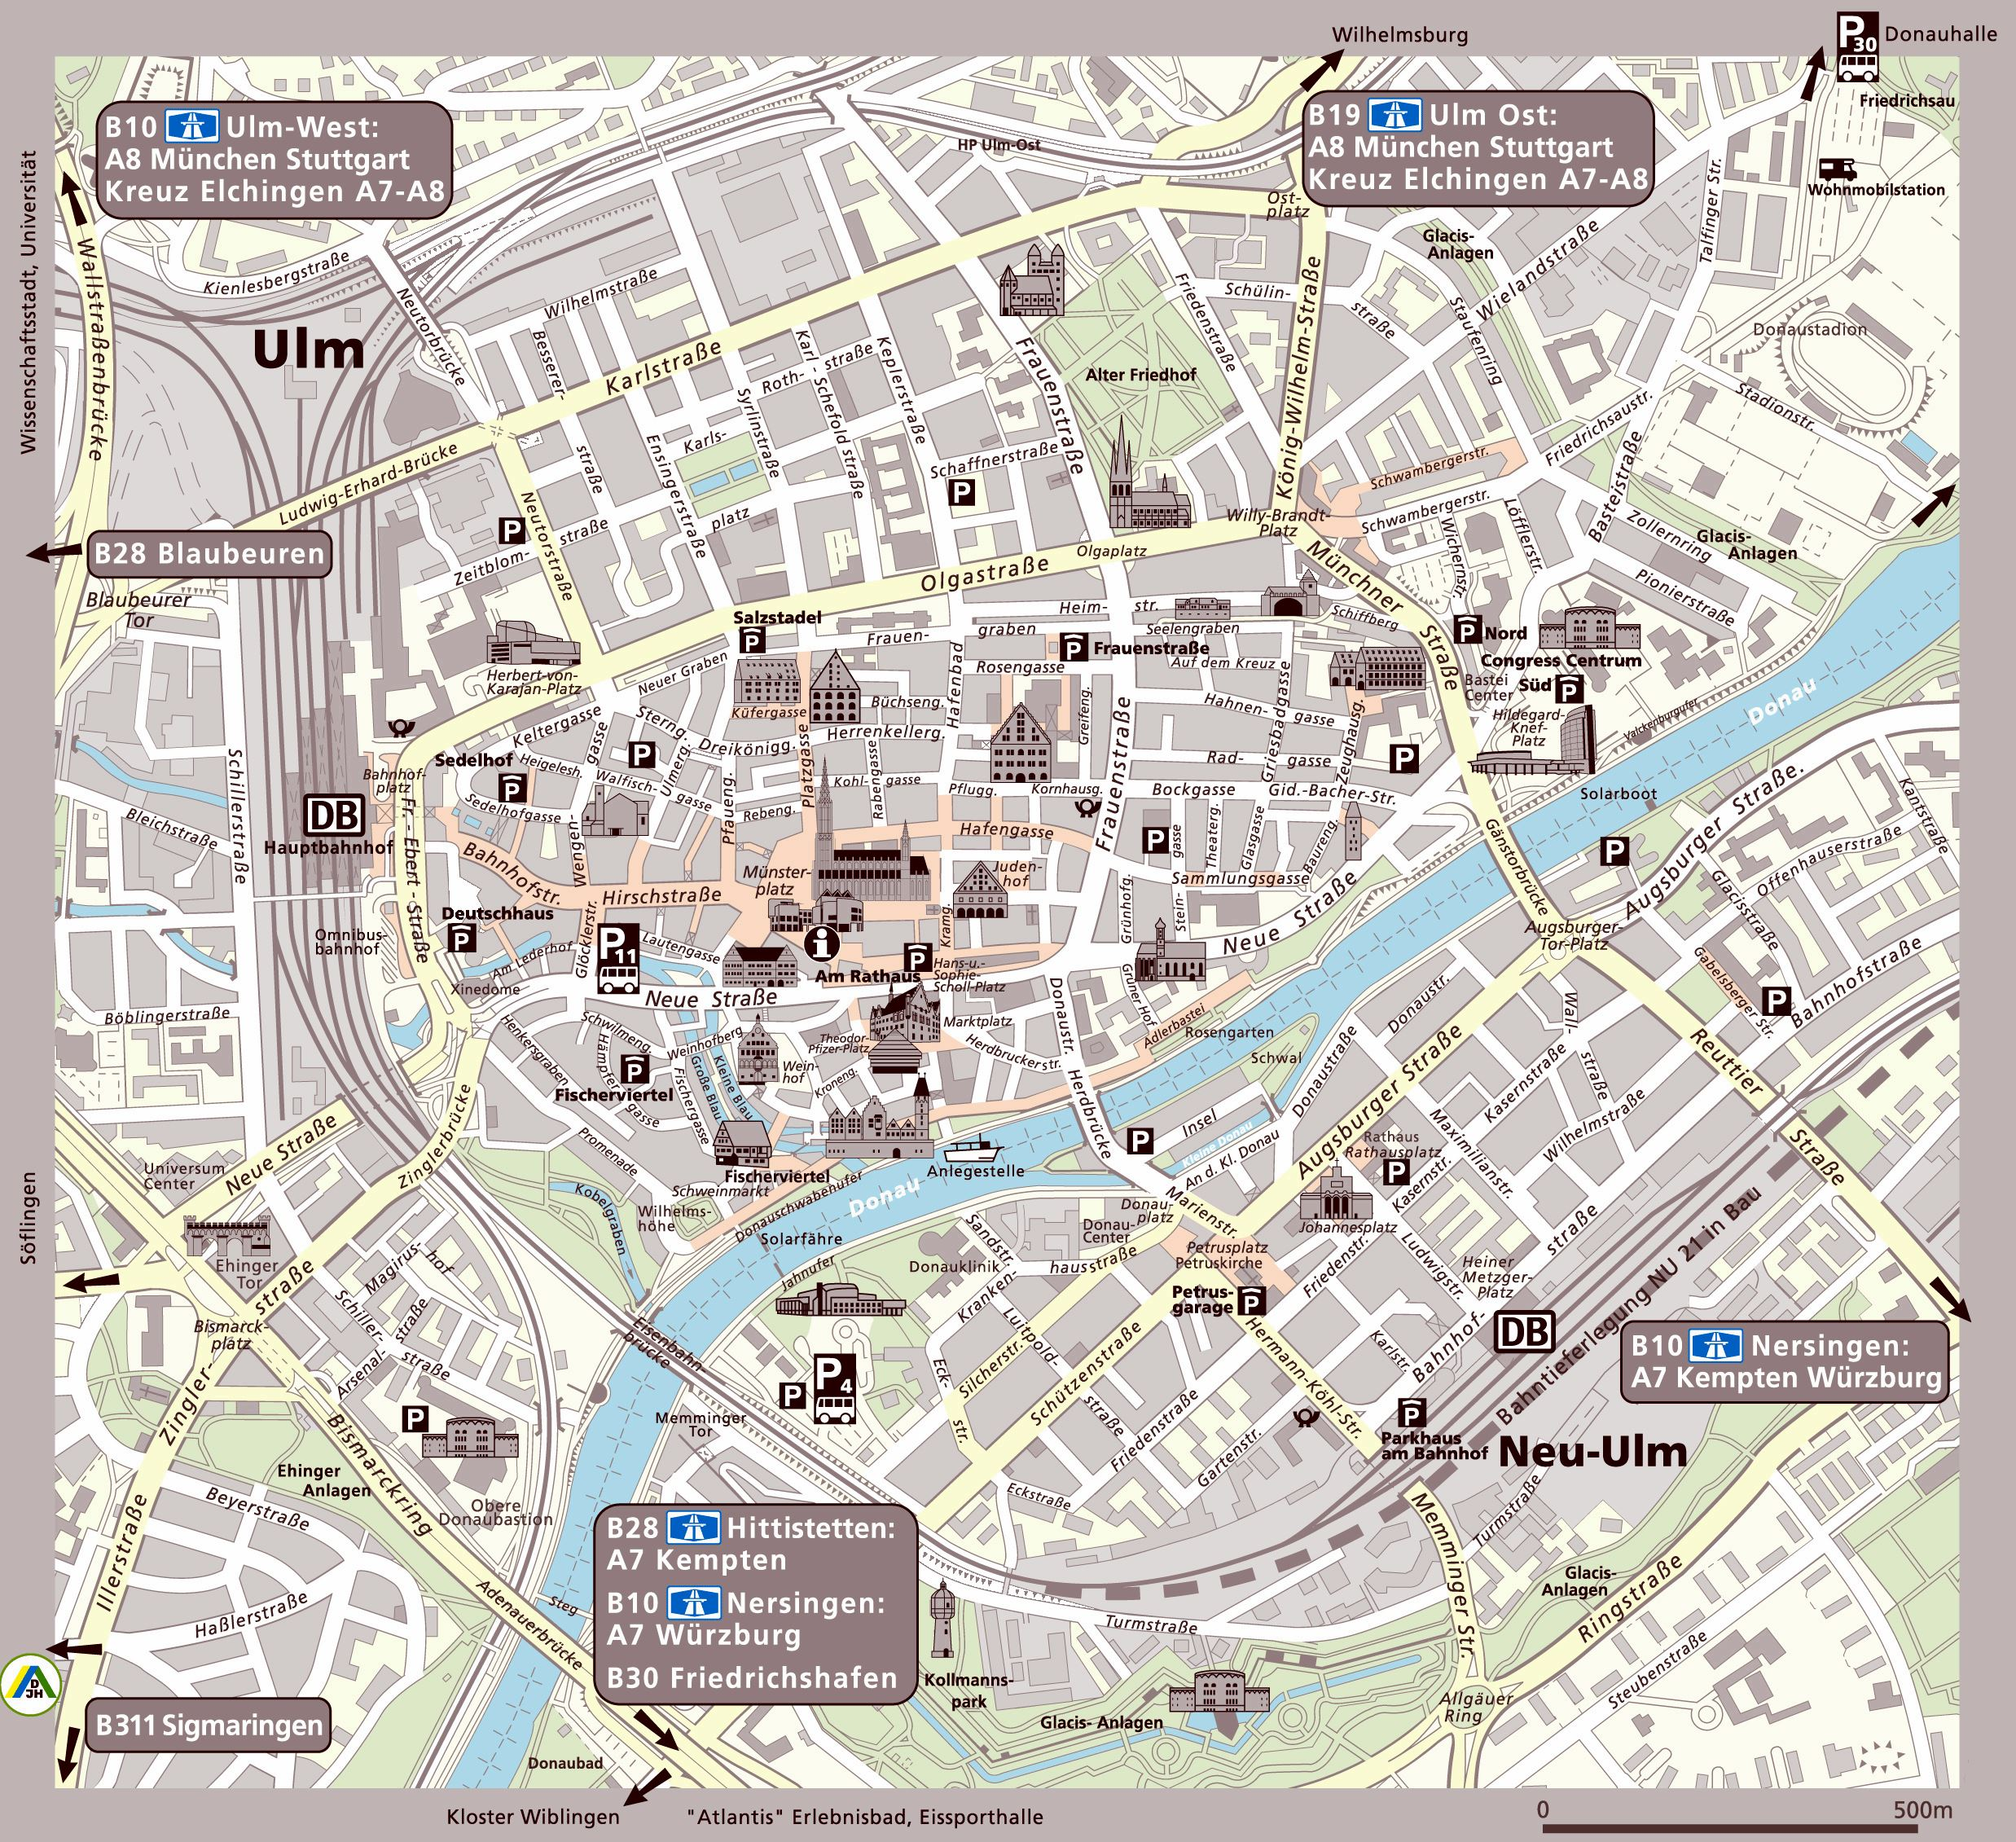 Large Ulm Maps for Free Download and Print HighResolution and